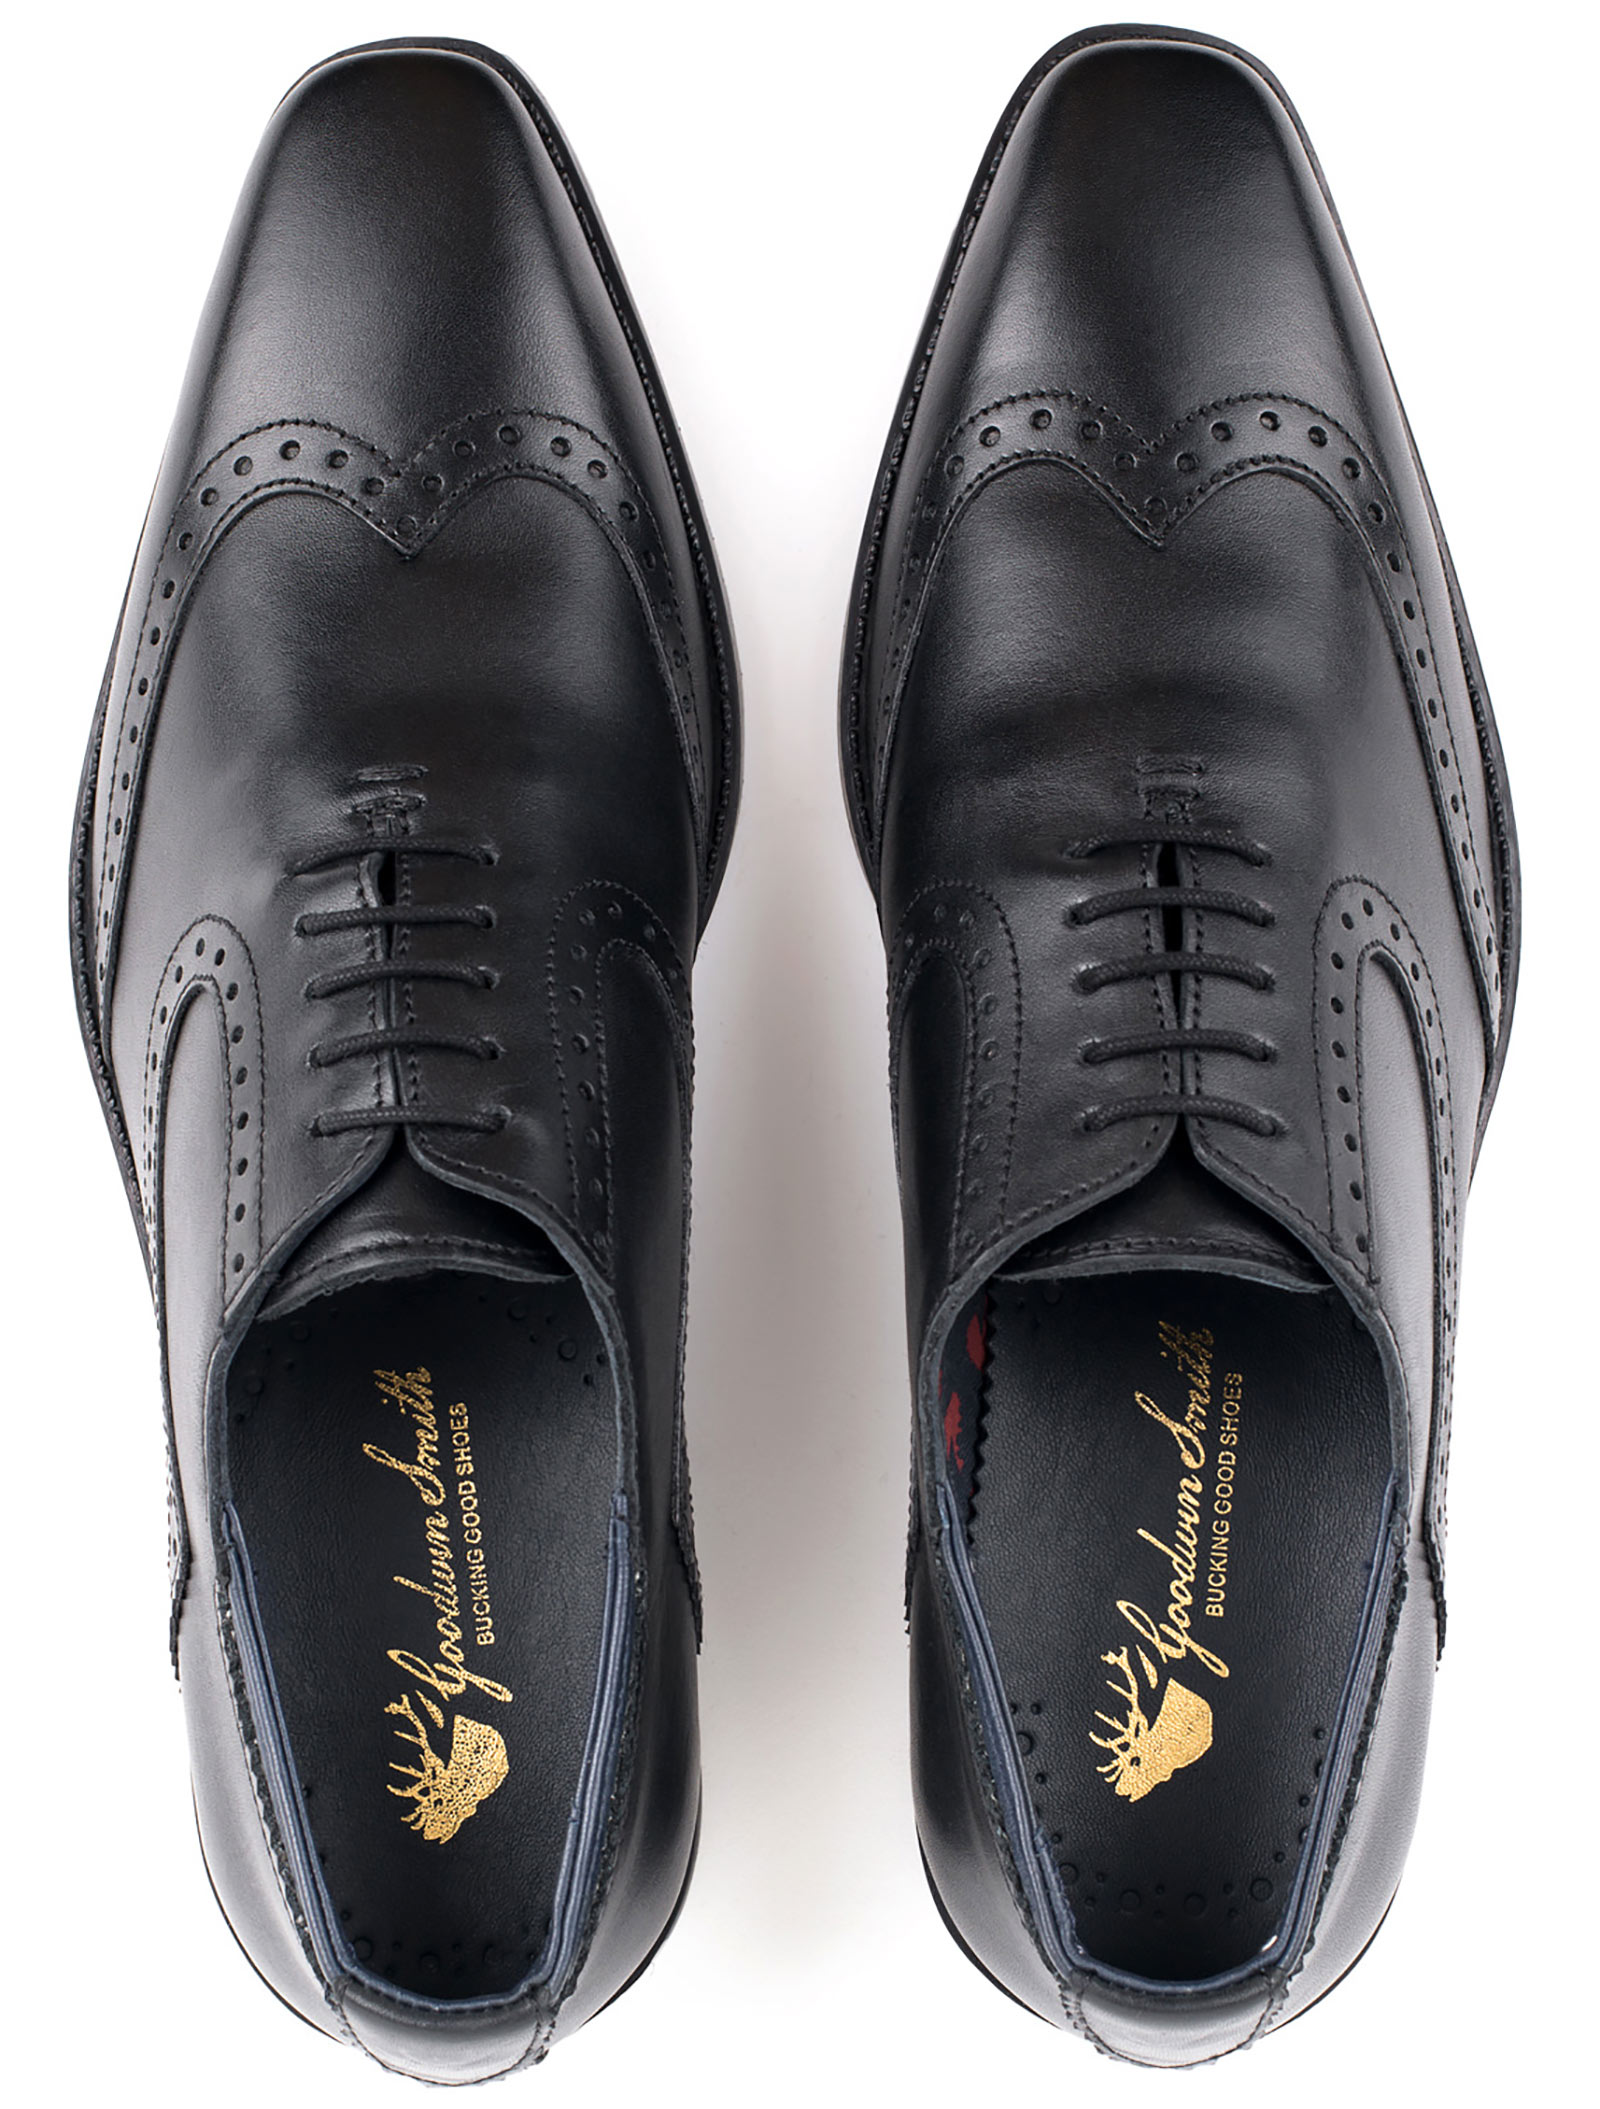 New Goodwin Smith Marsden Oxford Mens Brogue Brogue Brogue shoes ALL SIZES AND COLOURS 480354